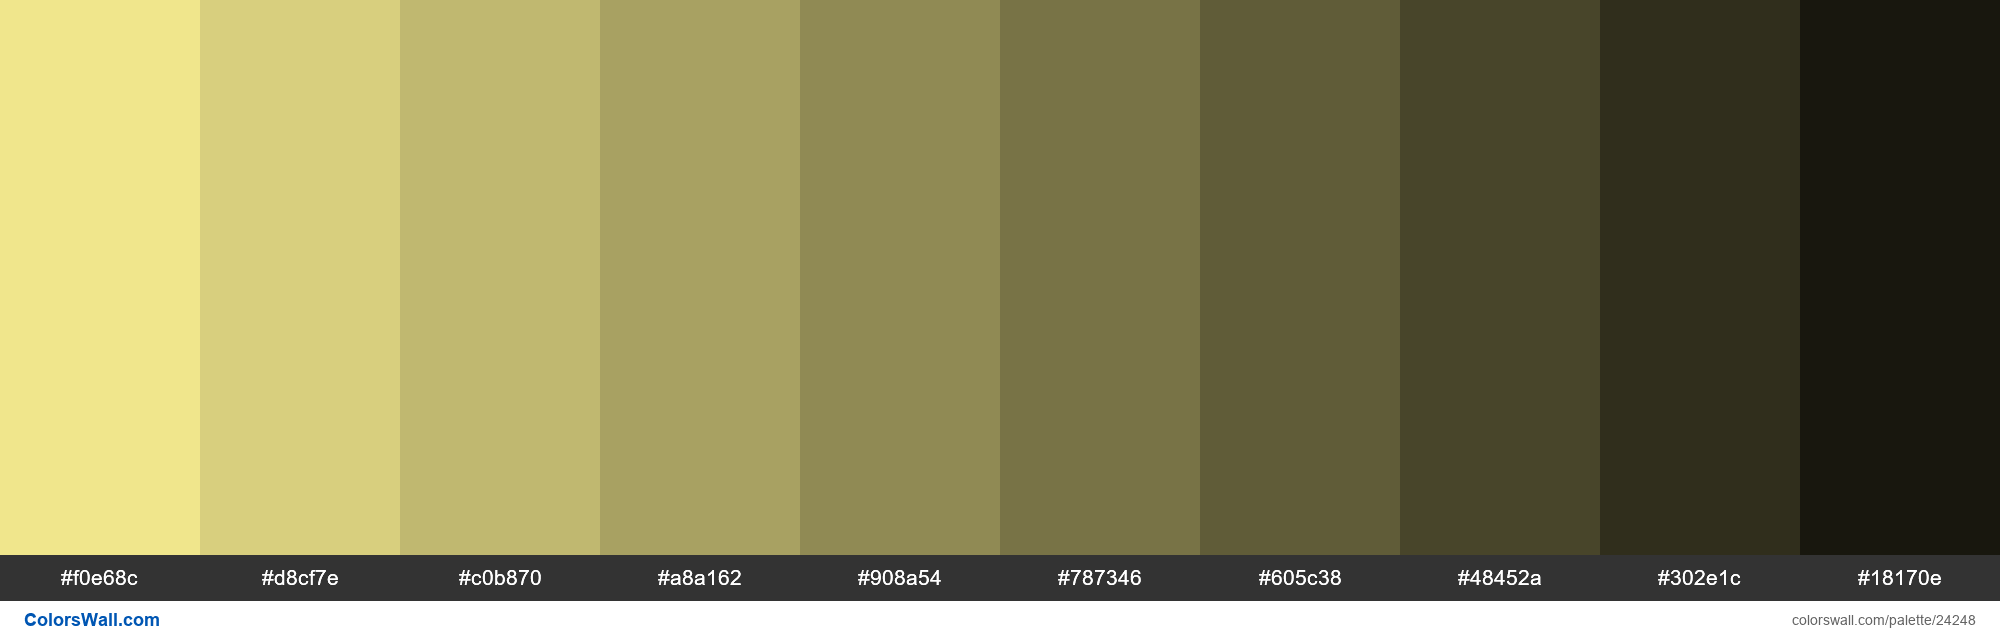 Shades of Khaki #F0E68C hex color - #24248